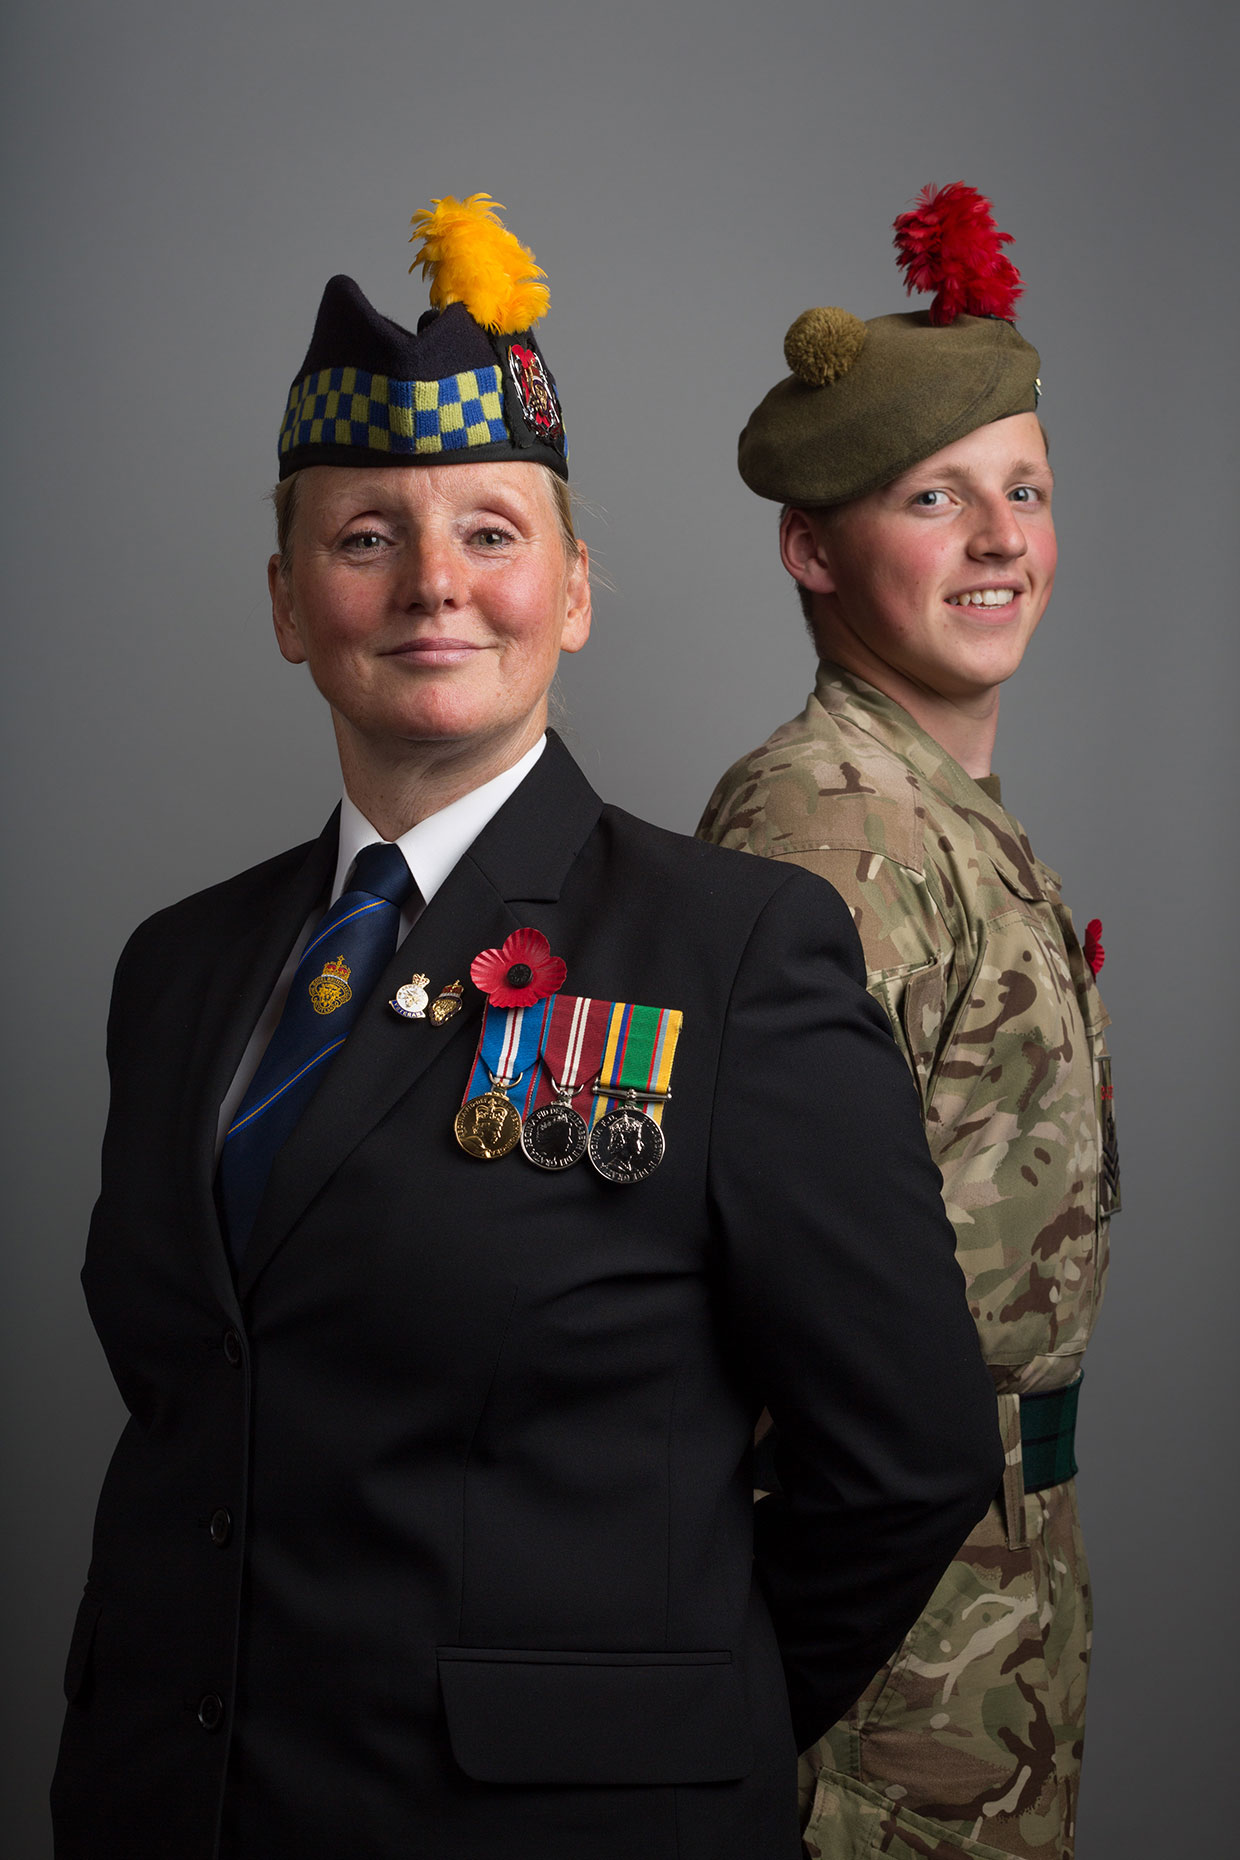 Portrait of Scottish Royal Legion members, by Scotland photographer J. Sutton-Hibbert